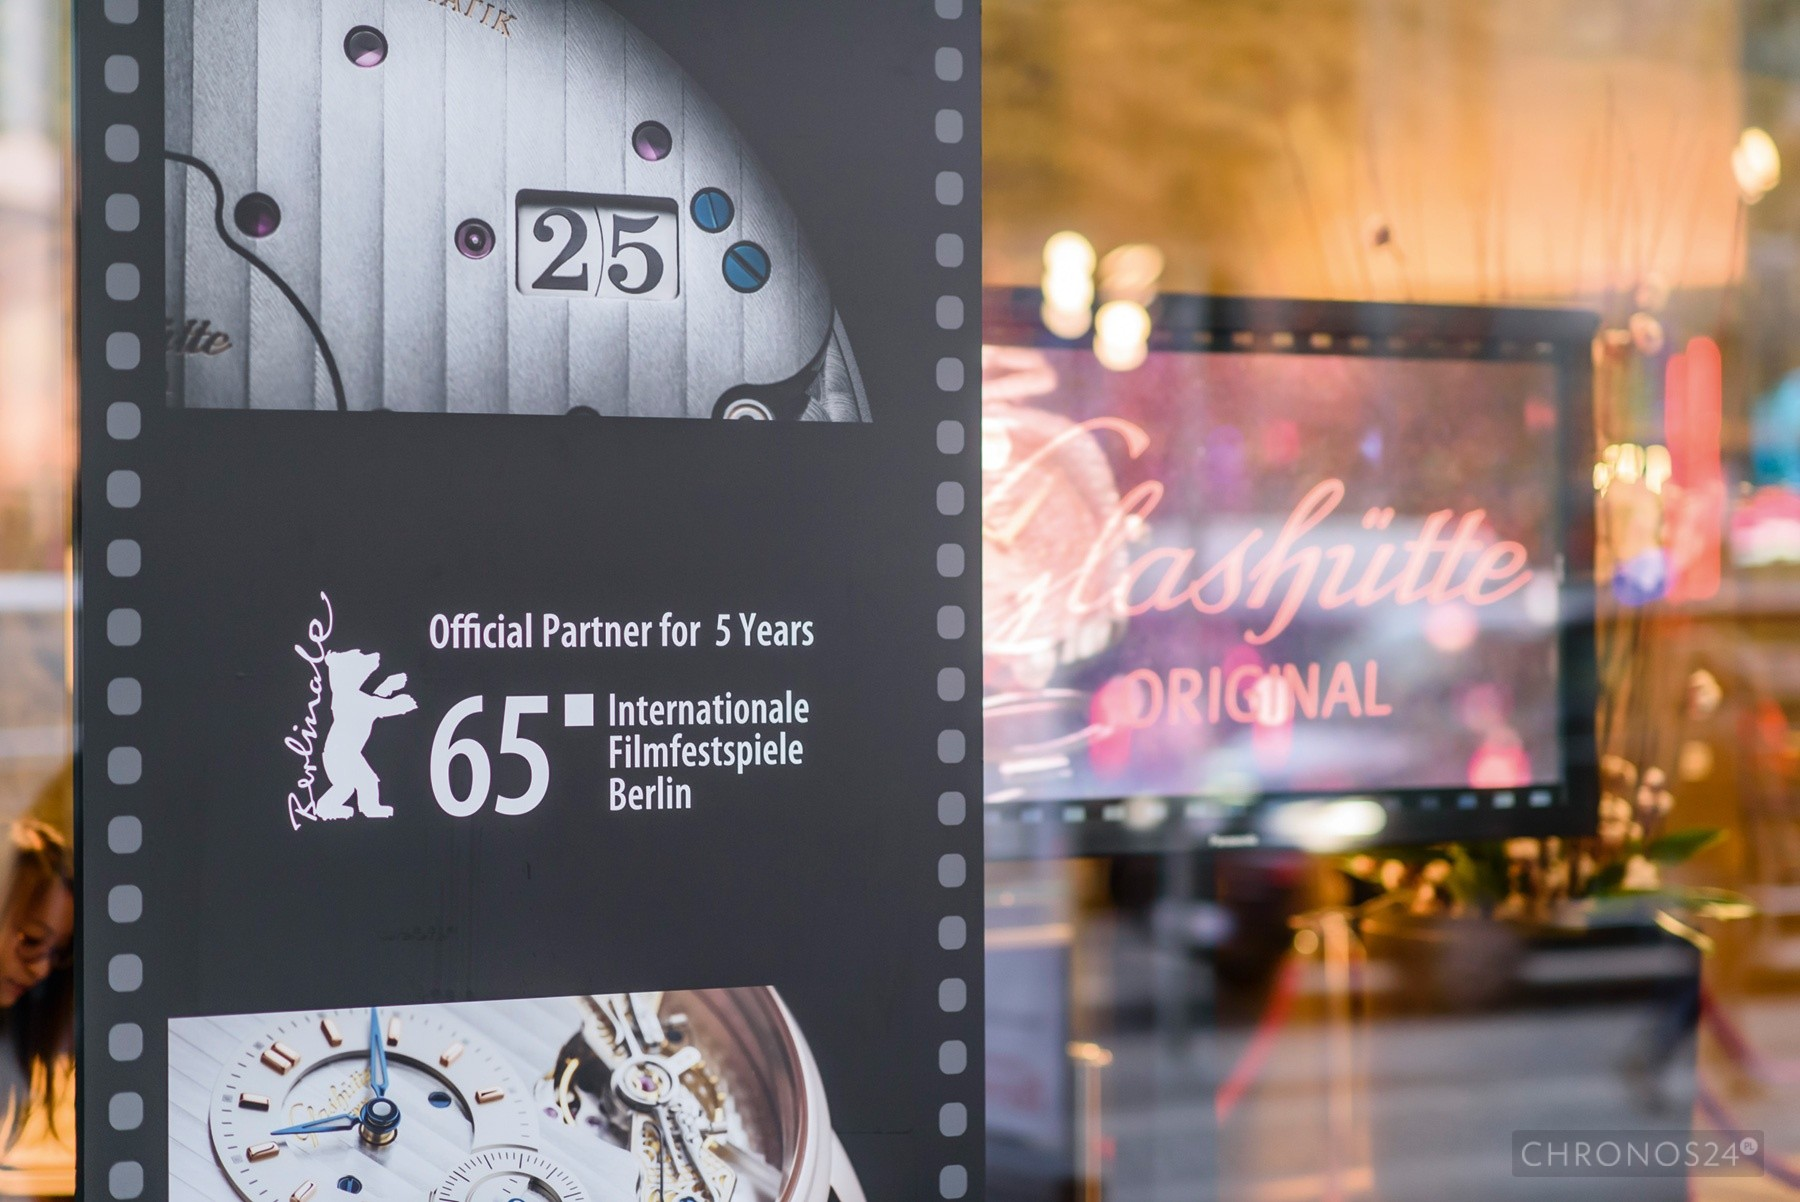 Glashütte Original i Berlinale